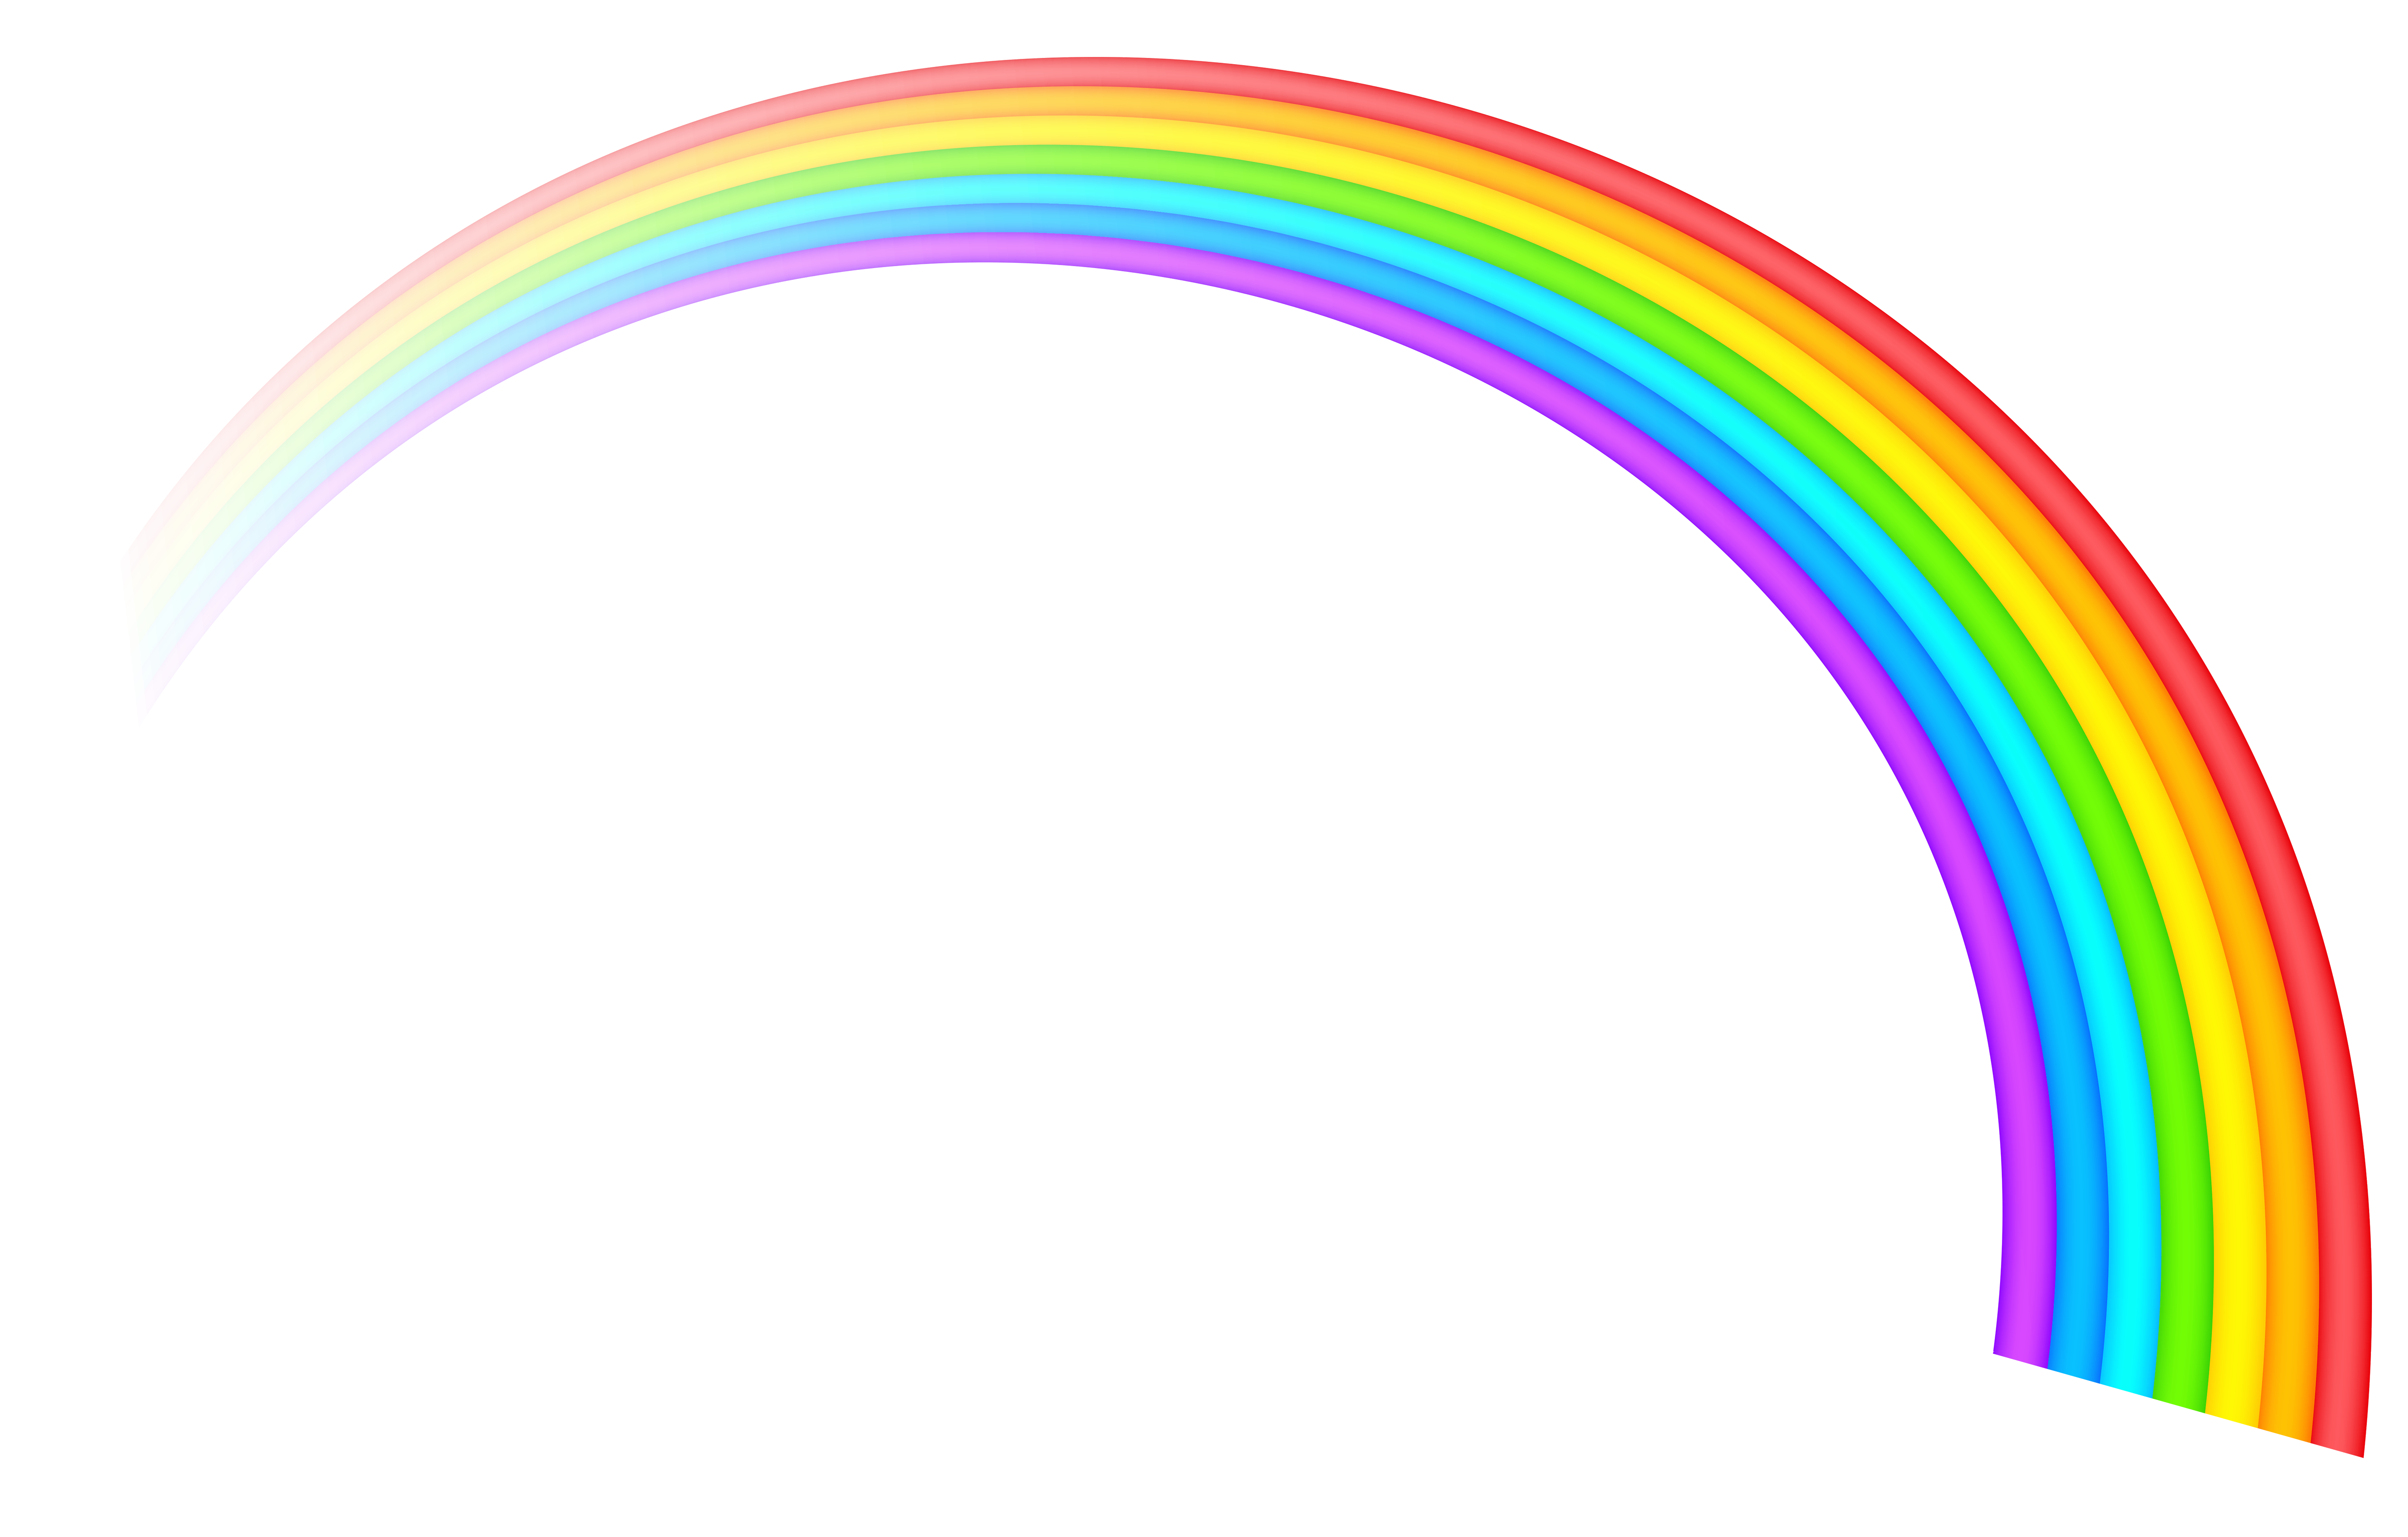 Cartoon rainbow png. Transparent clipart picture gallery